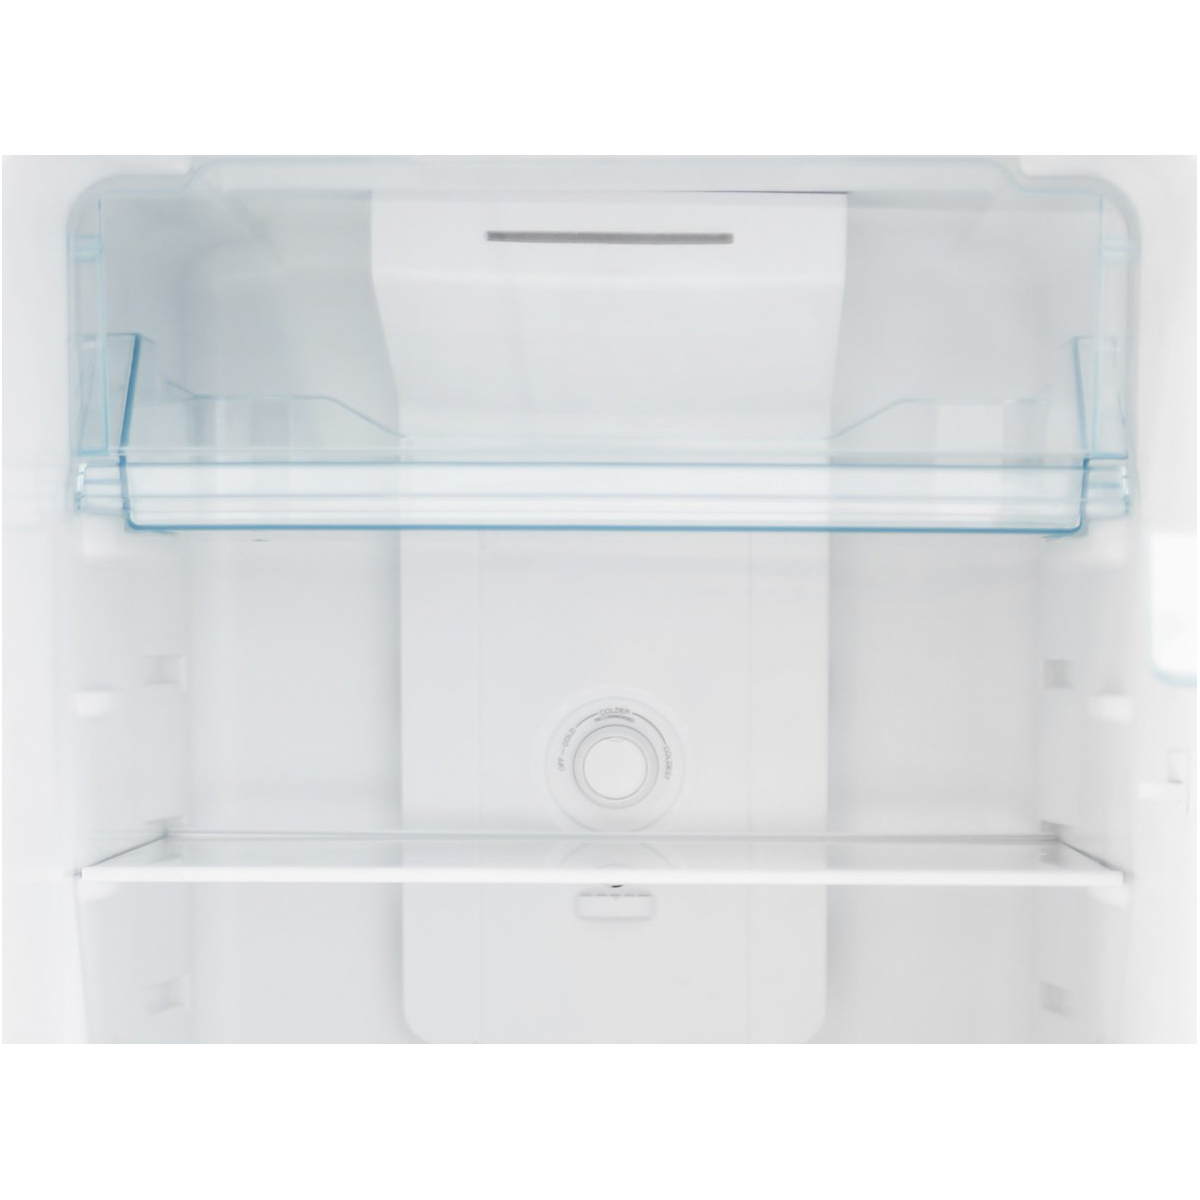 Lemair LTM221W 221Litres Top Mount Fridge 104743